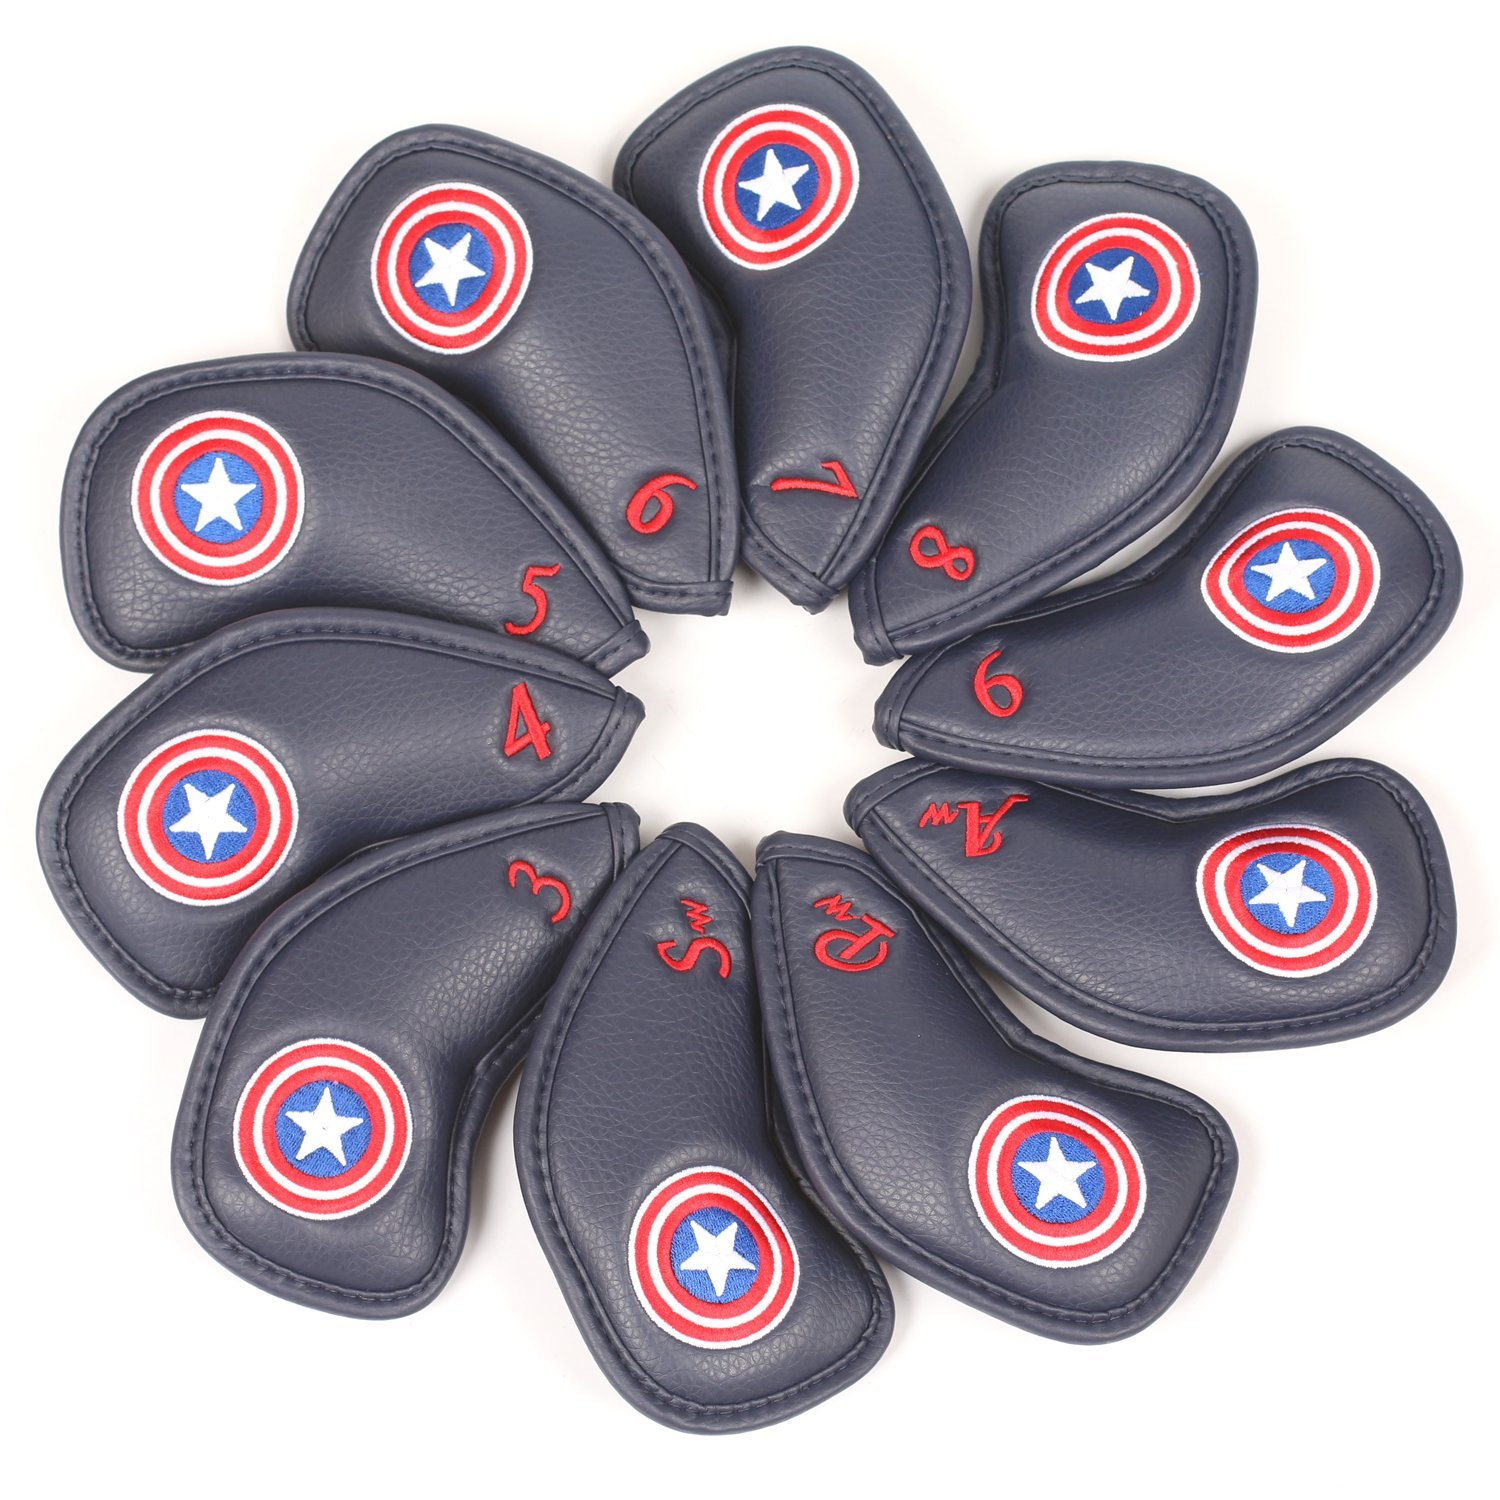 Volf Golf 10pcs Captain America Style Thick Synthetic Leather Golf Iron Head Covers Set Headcover Fit All Brands Titleist, Callaway, Ping, Taylormade, Cobra, Nike, Etc. …